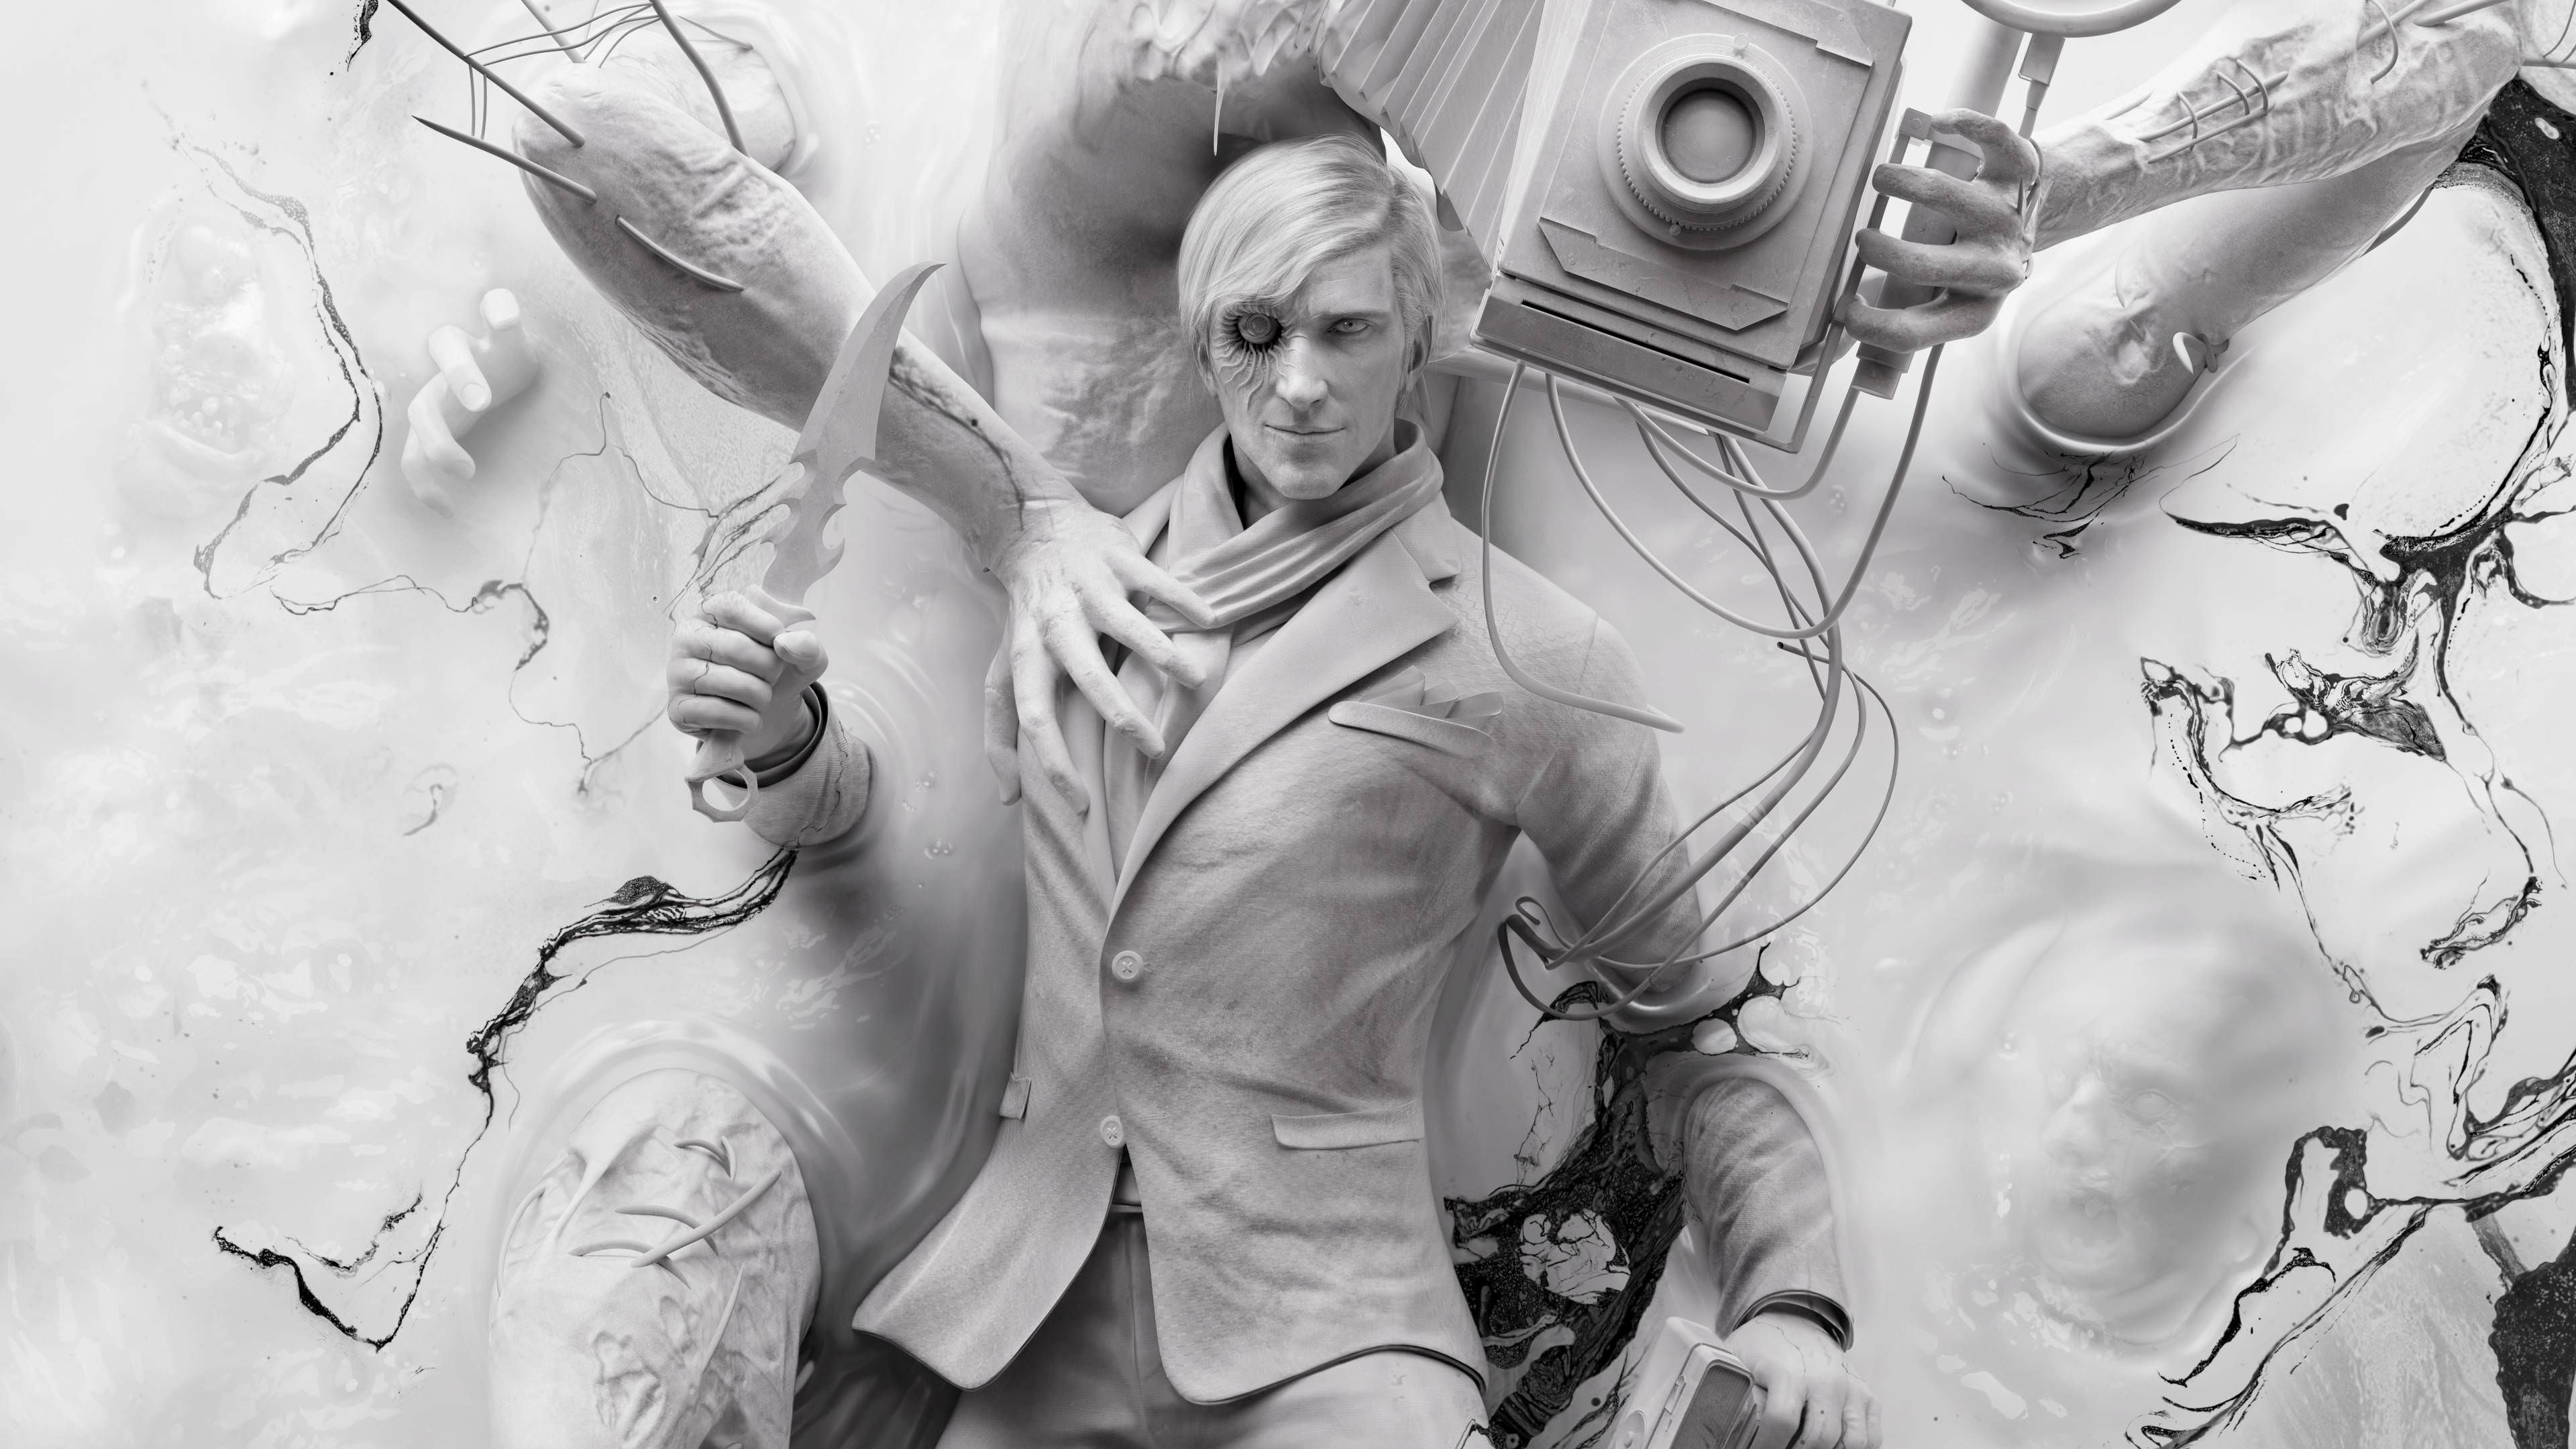 The Evil Within Wallpapers: The Evil Within 2 Wallpapers